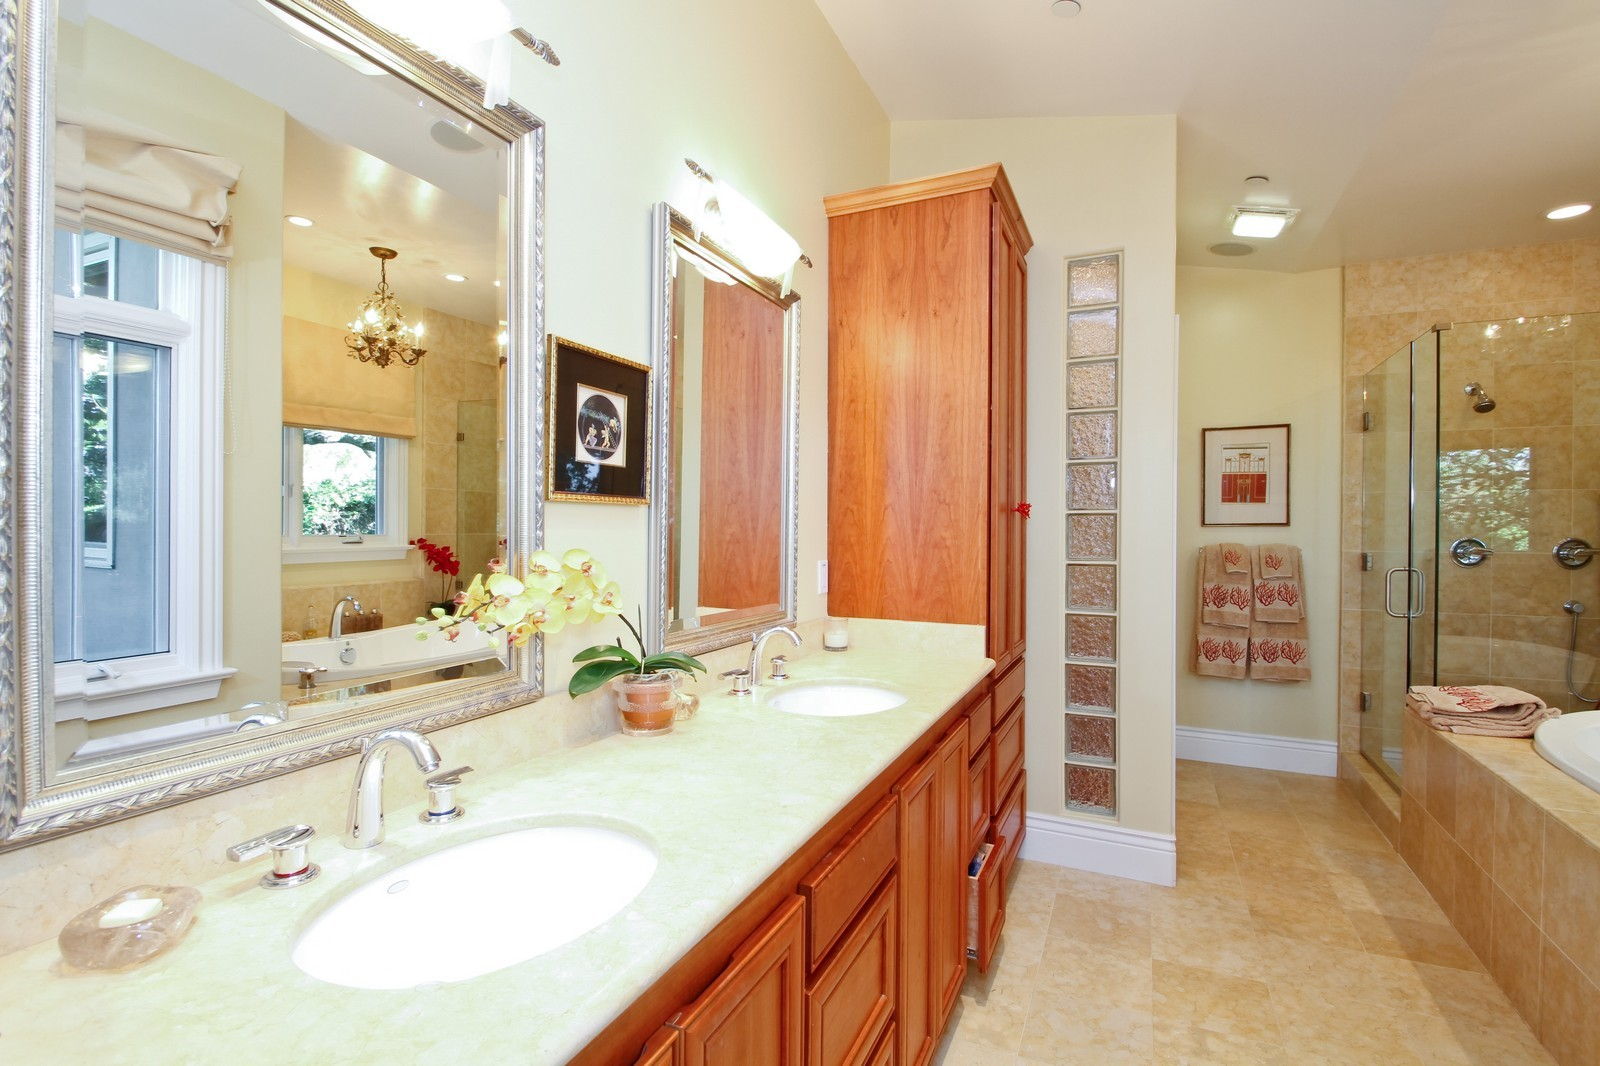 Real Estate Photography - 73 Upper Toyon Drive, Kentfield, CA, 94904 - Master Bathroom